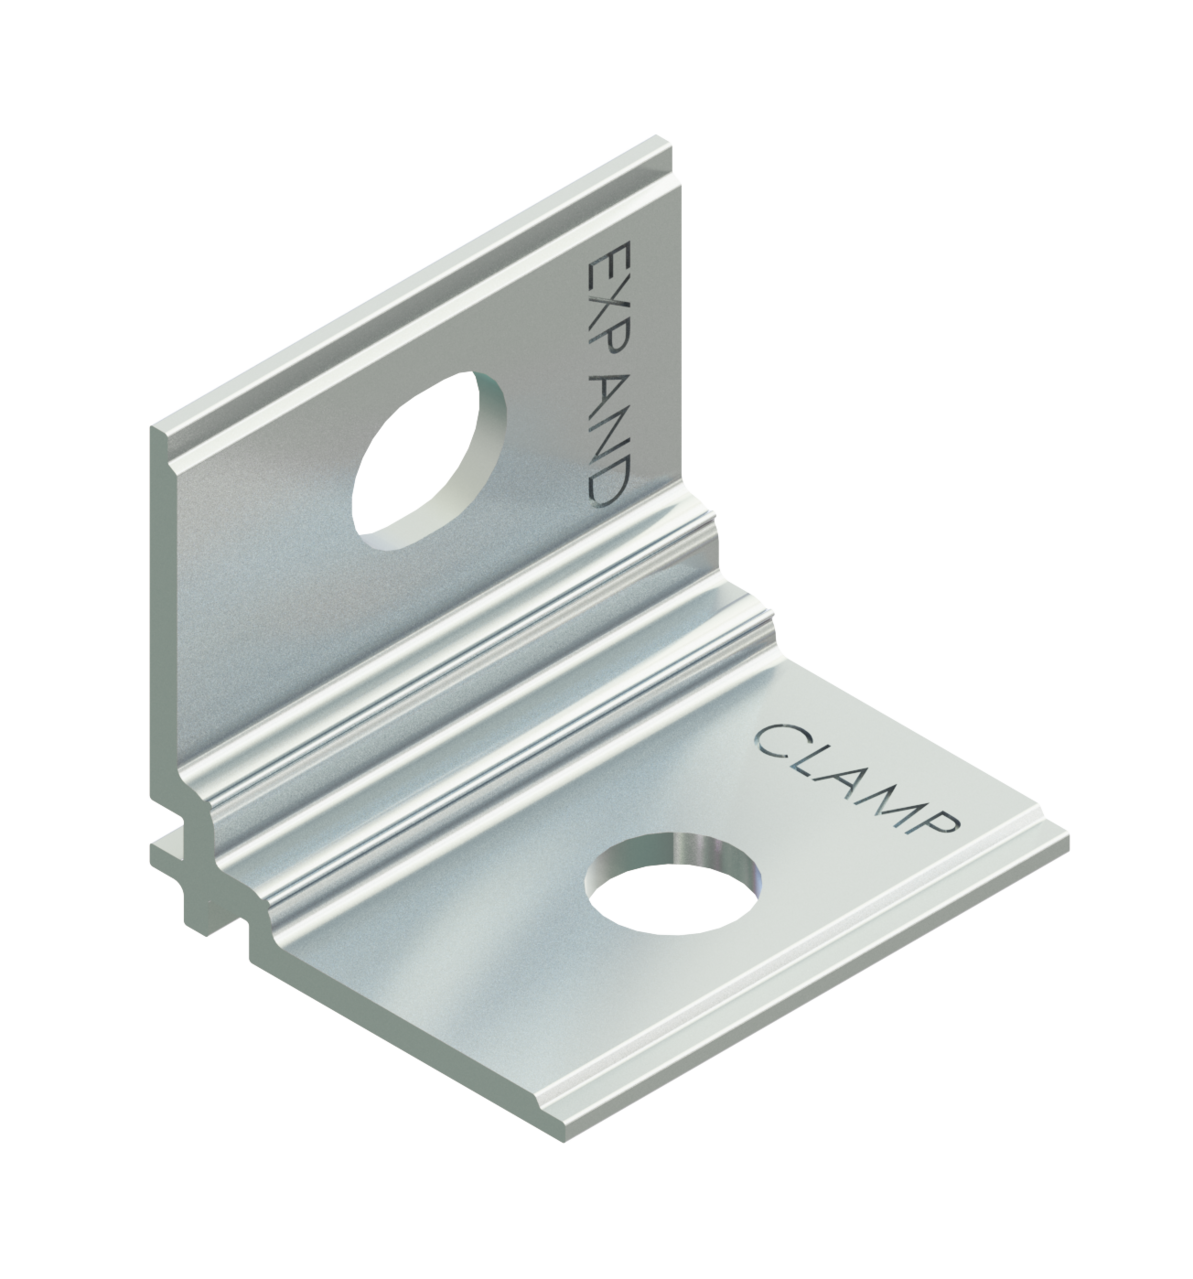 Cable Channel Tray Hold Down Guide Clamp